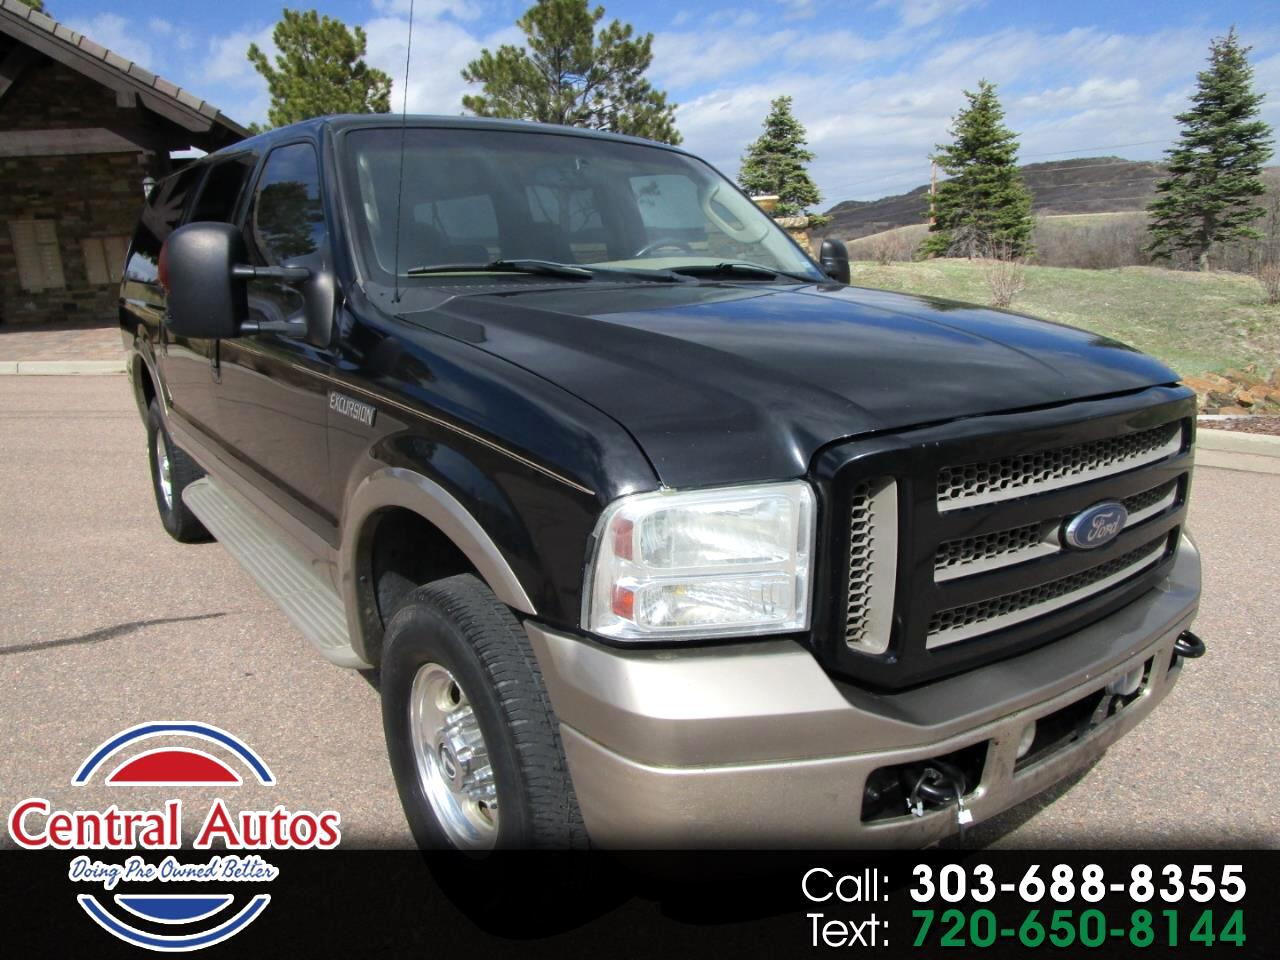 2005 Ford Excursion 137